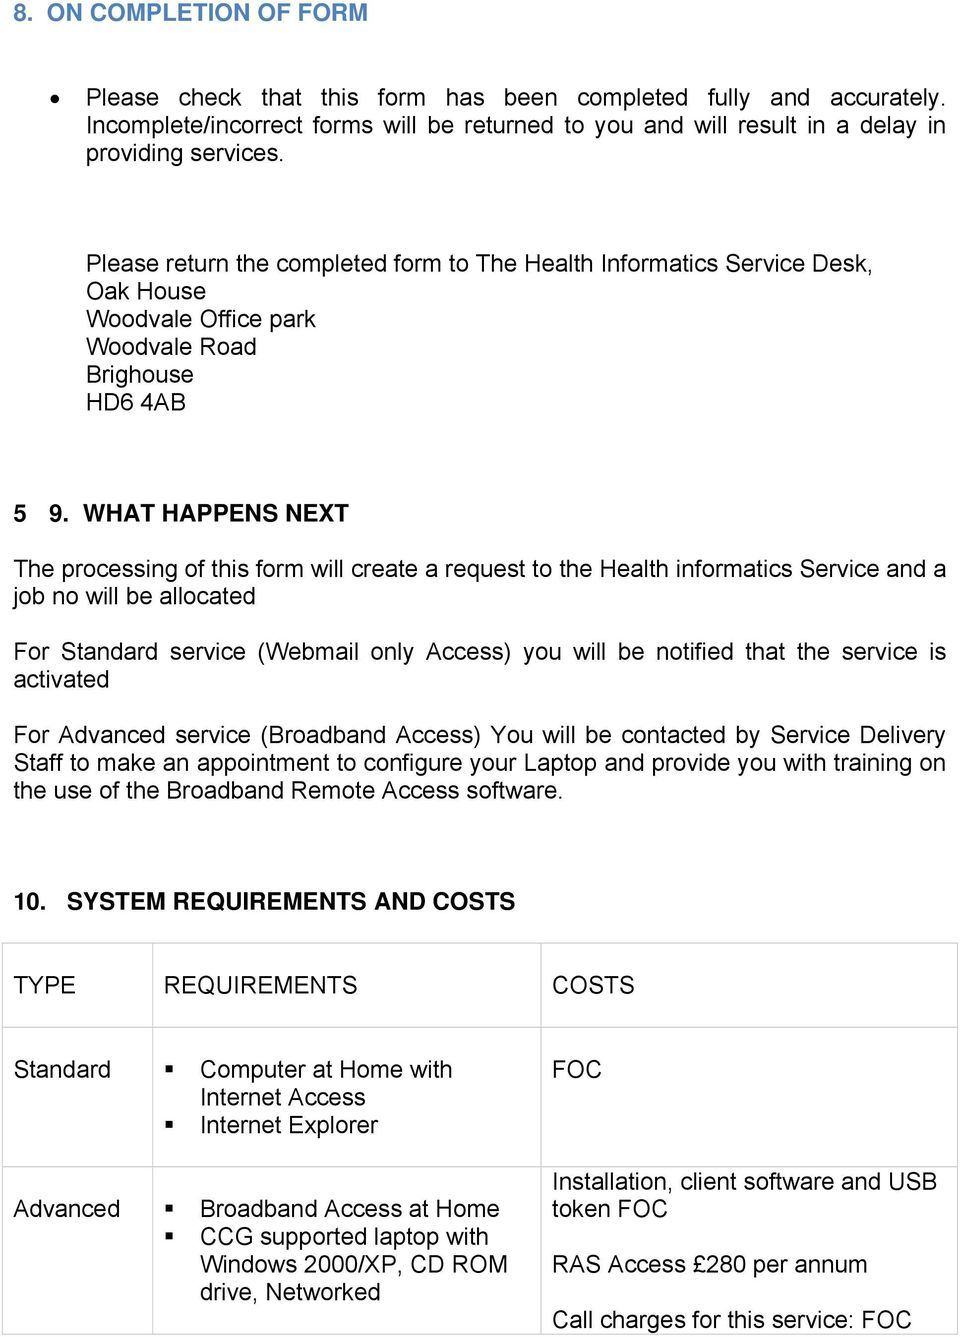 WHAT HAPPENS NEXT The processing of this form will create a request to the Health informatics Service and a job no will be allocated For Standard service (Webmail only Access) you will be notified